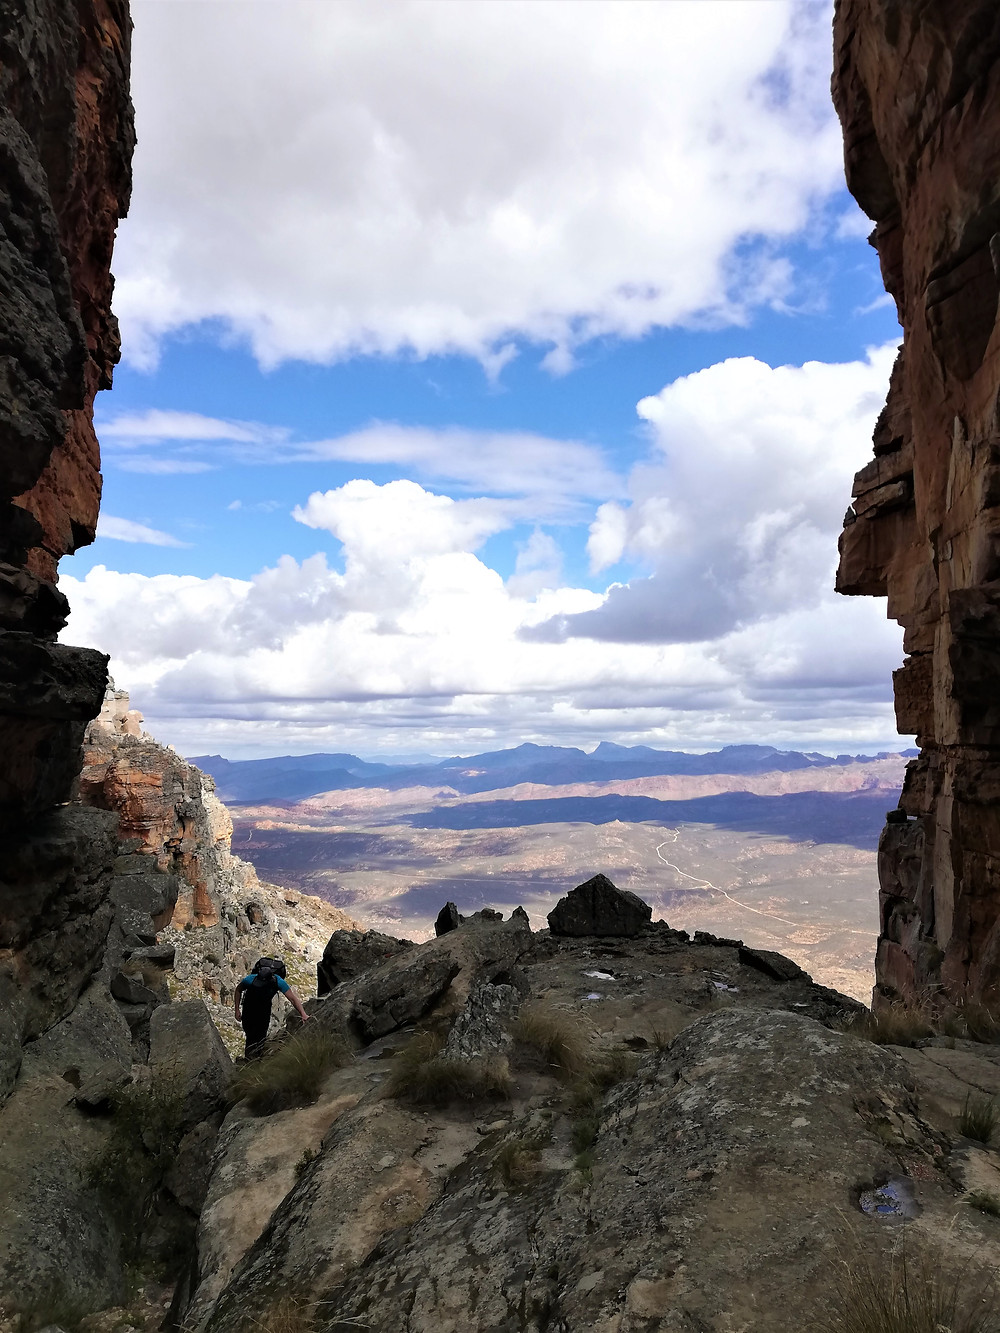 View looking out from between two rock faces